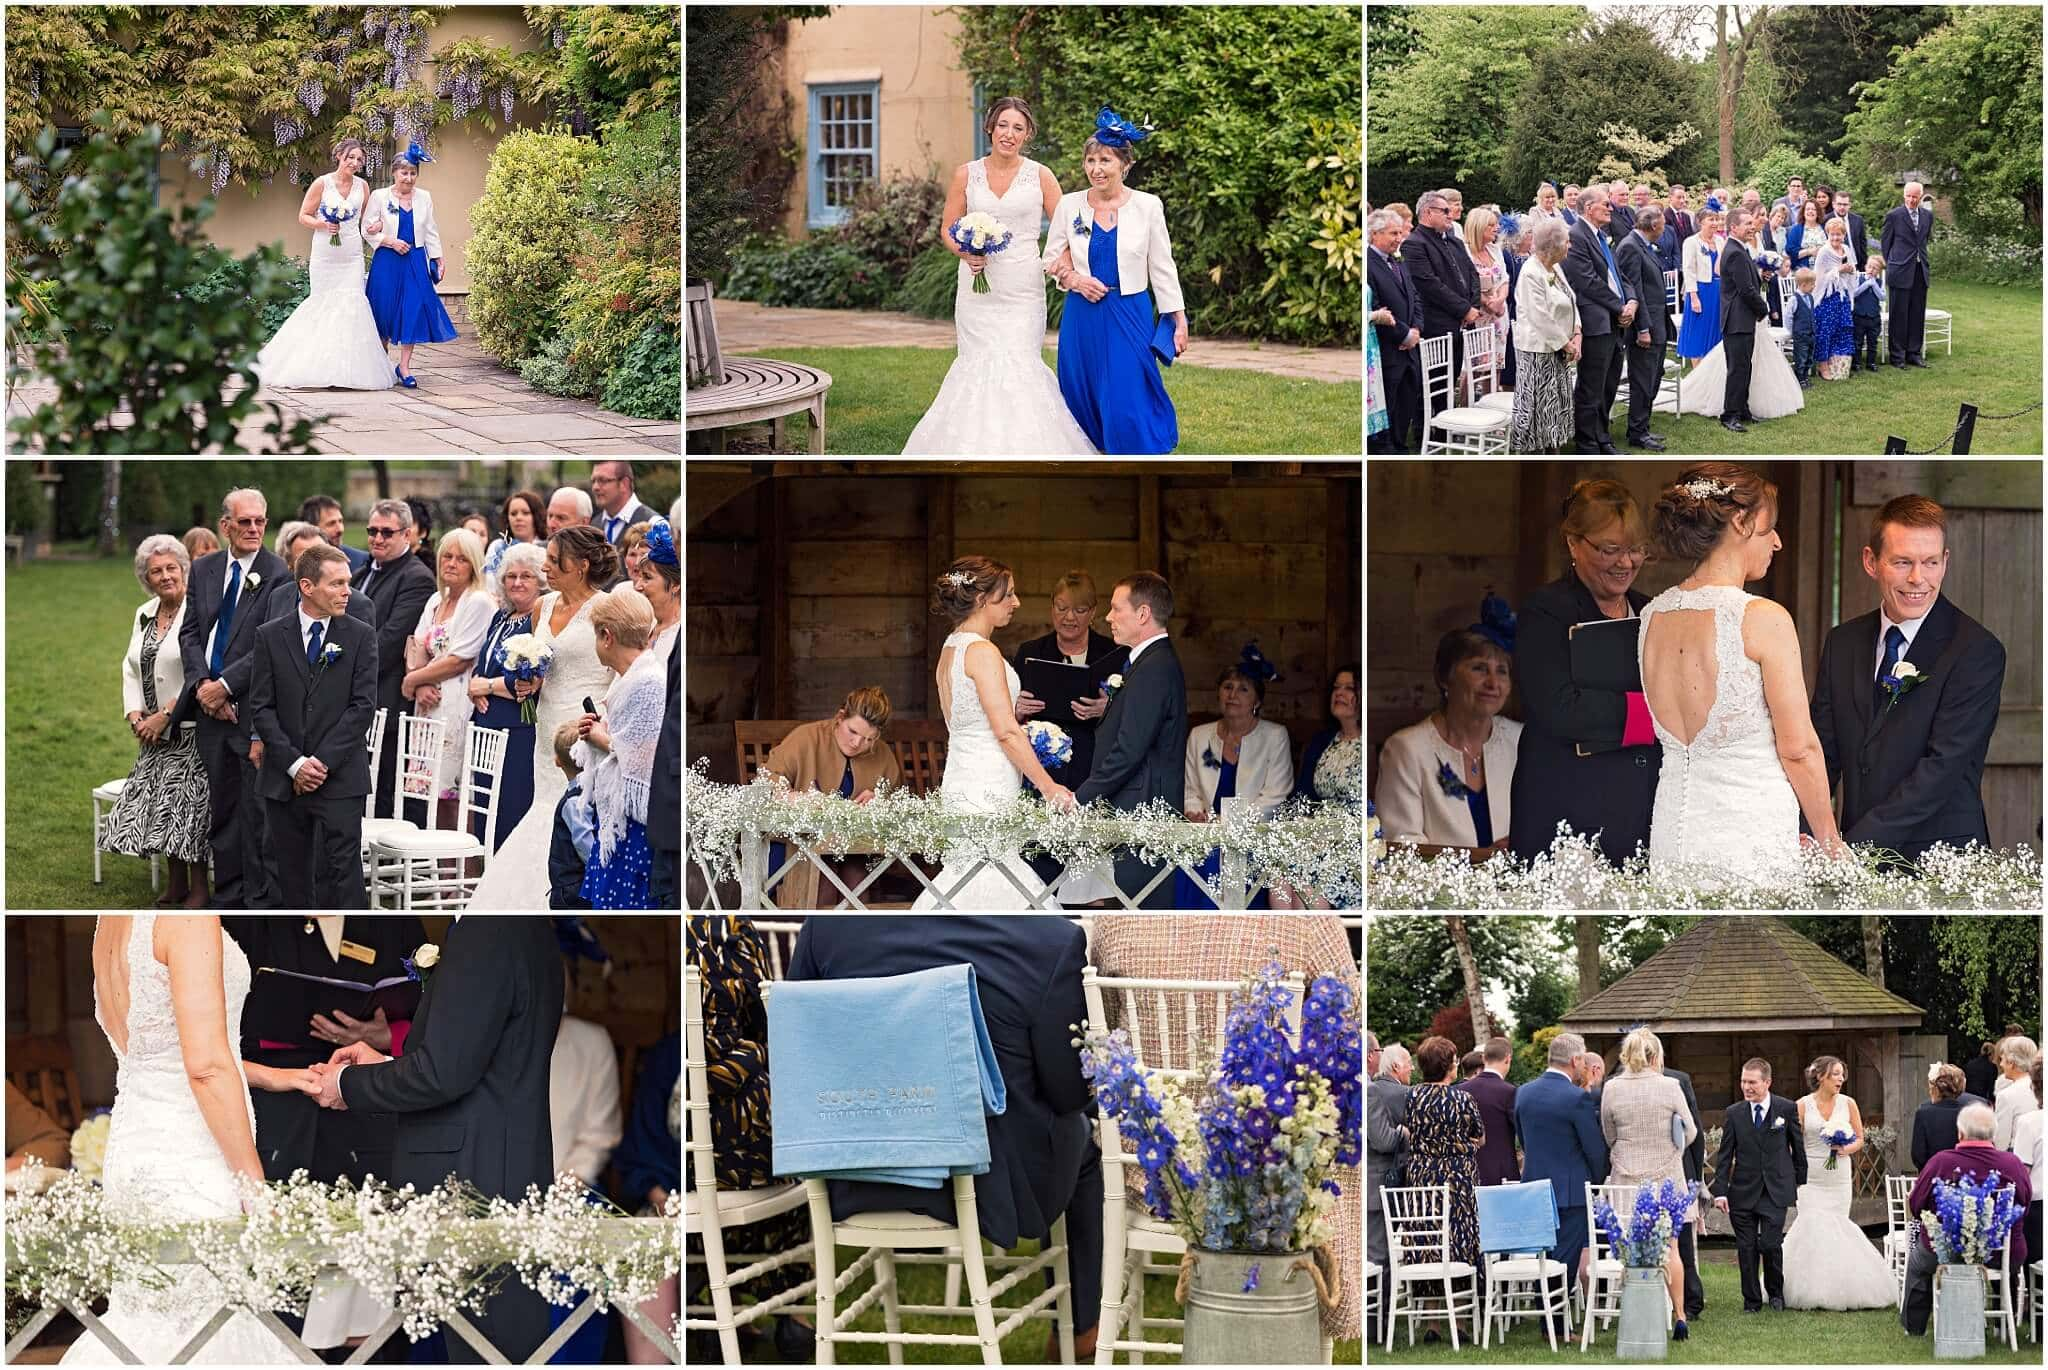 Family and friends watching outdoor wedding ceremony at South Farm